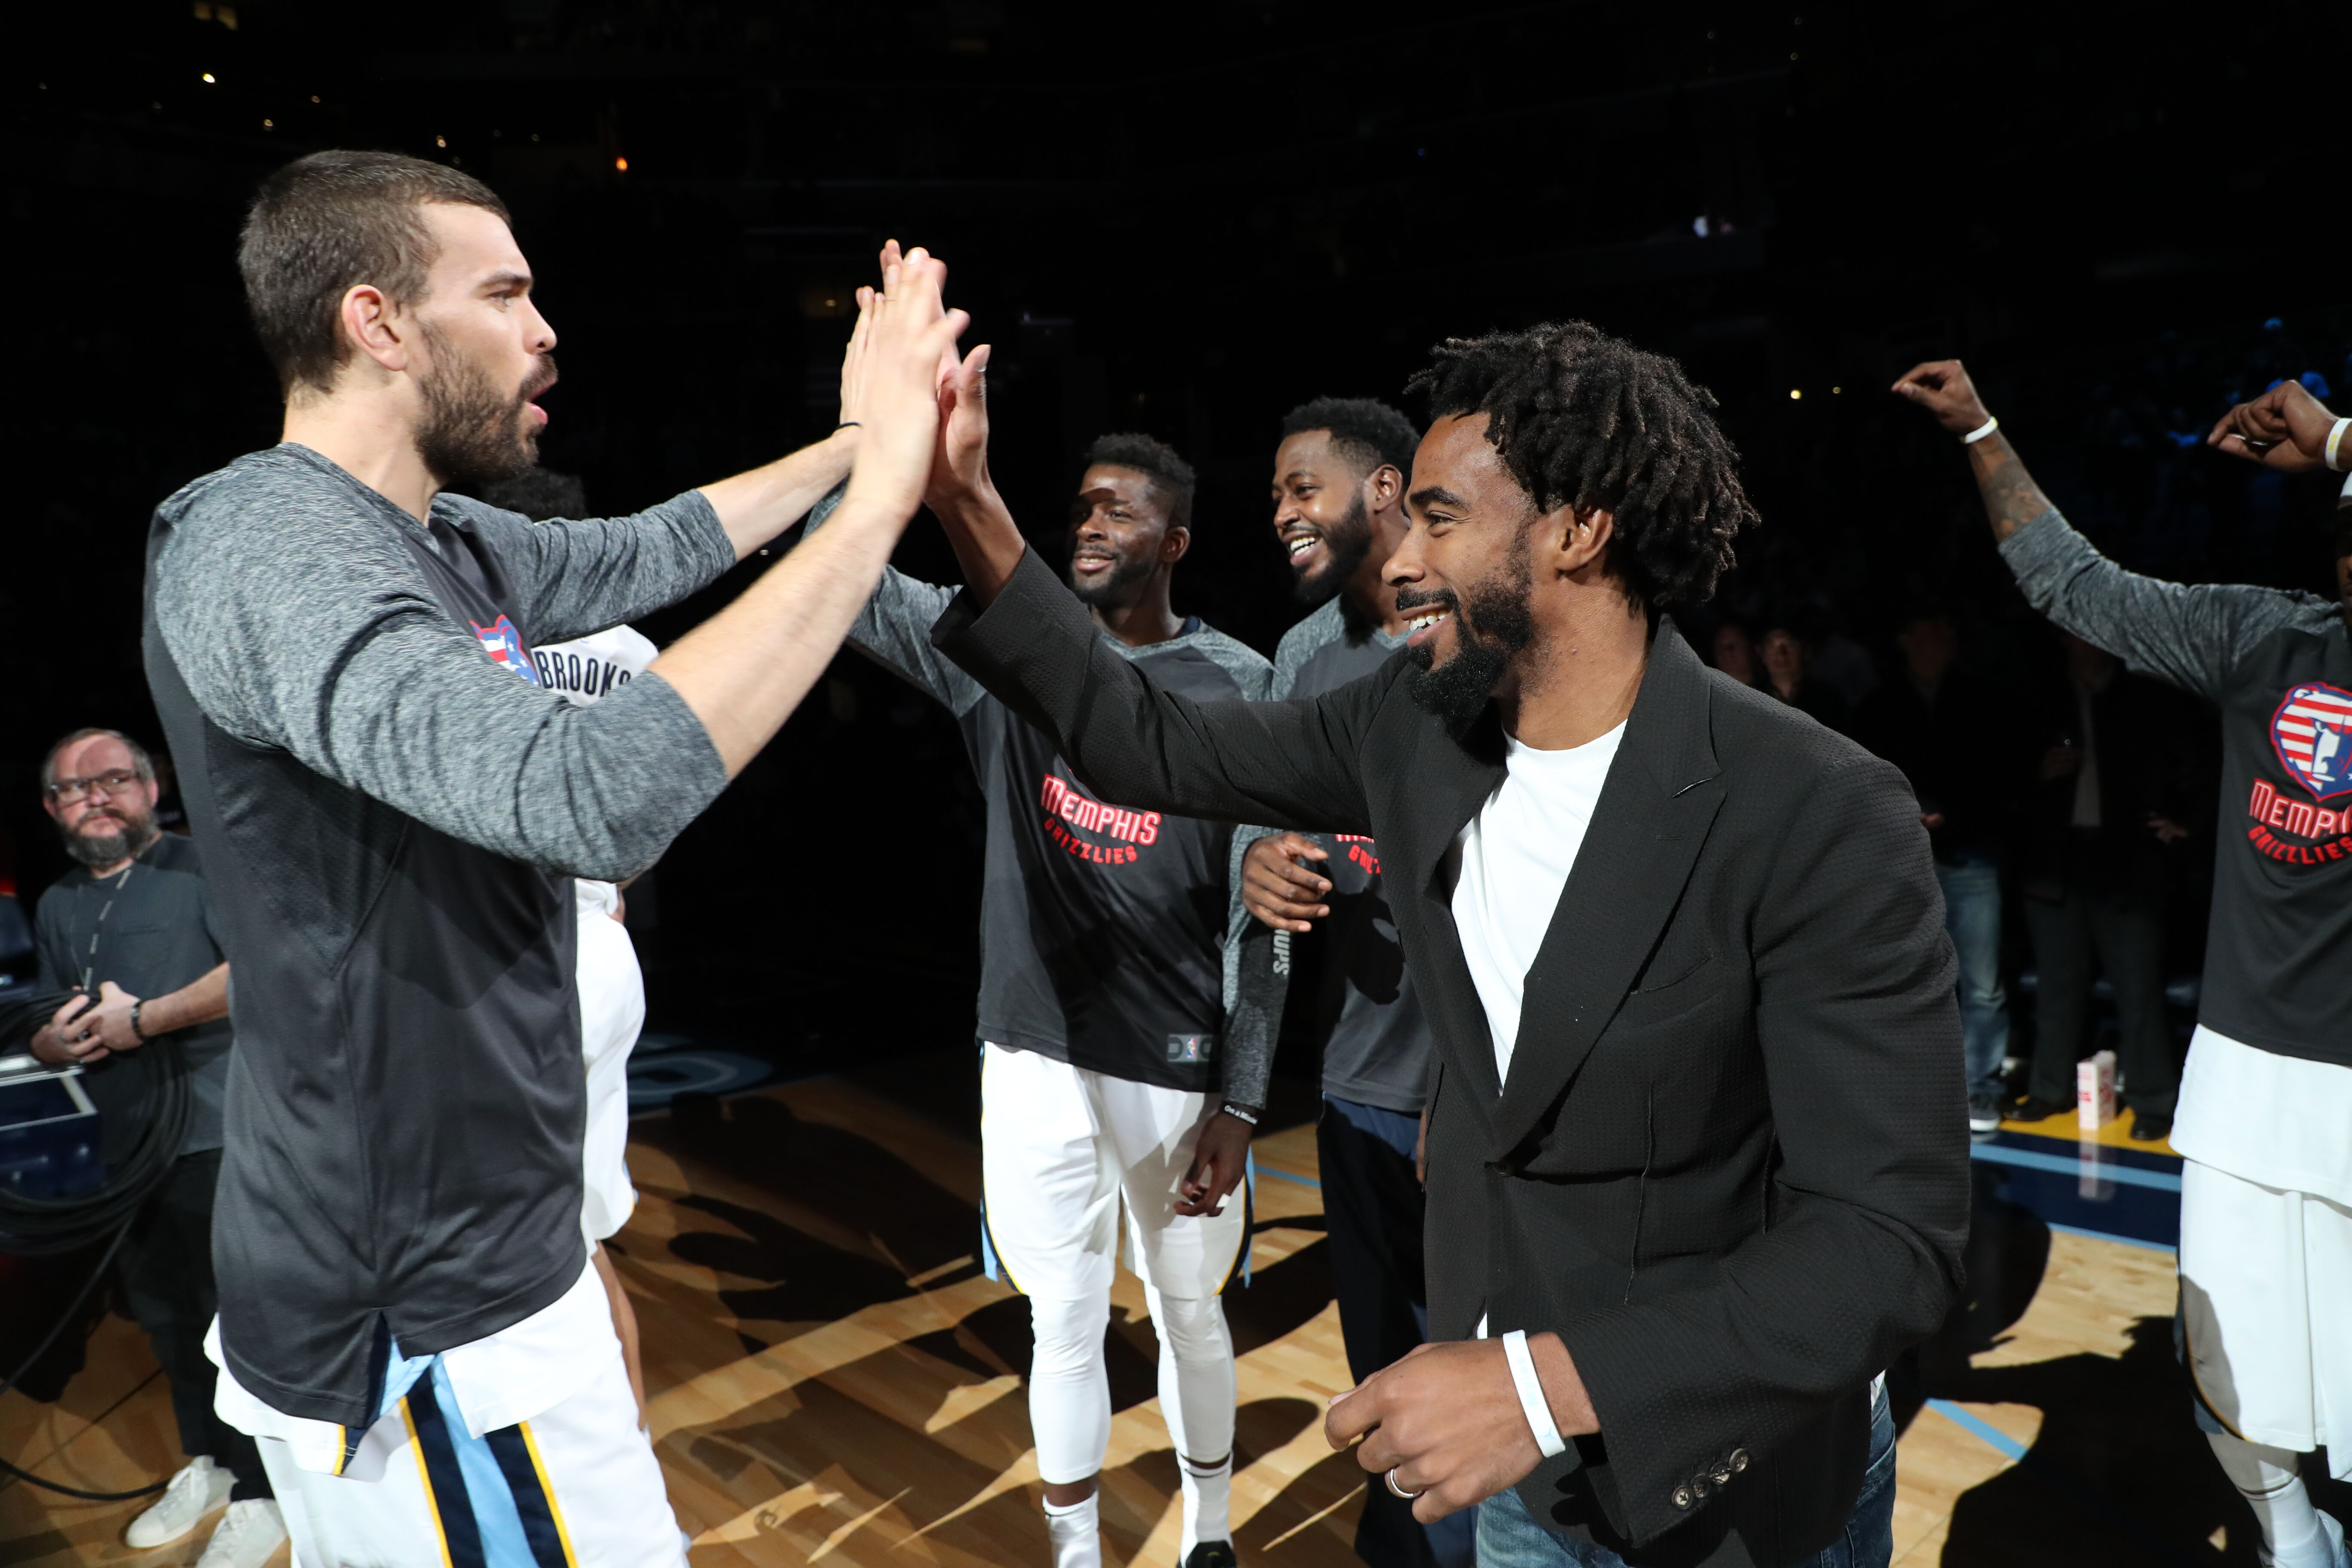 875556262-indiana-pacers-v-memphis-grizzlies.jpg